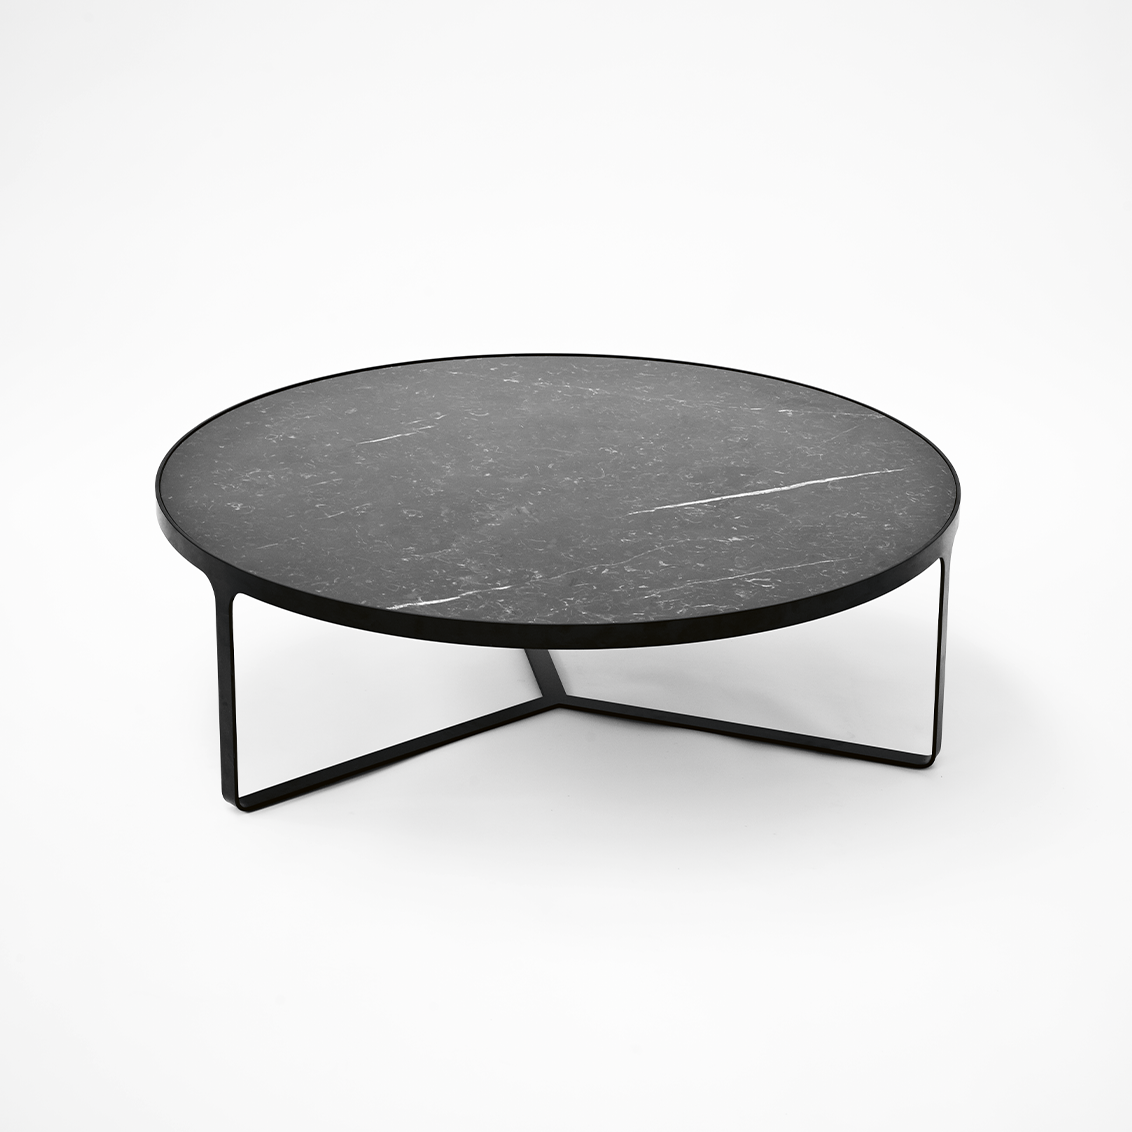 Cage Table Stylecraft Coffee Table Side Table